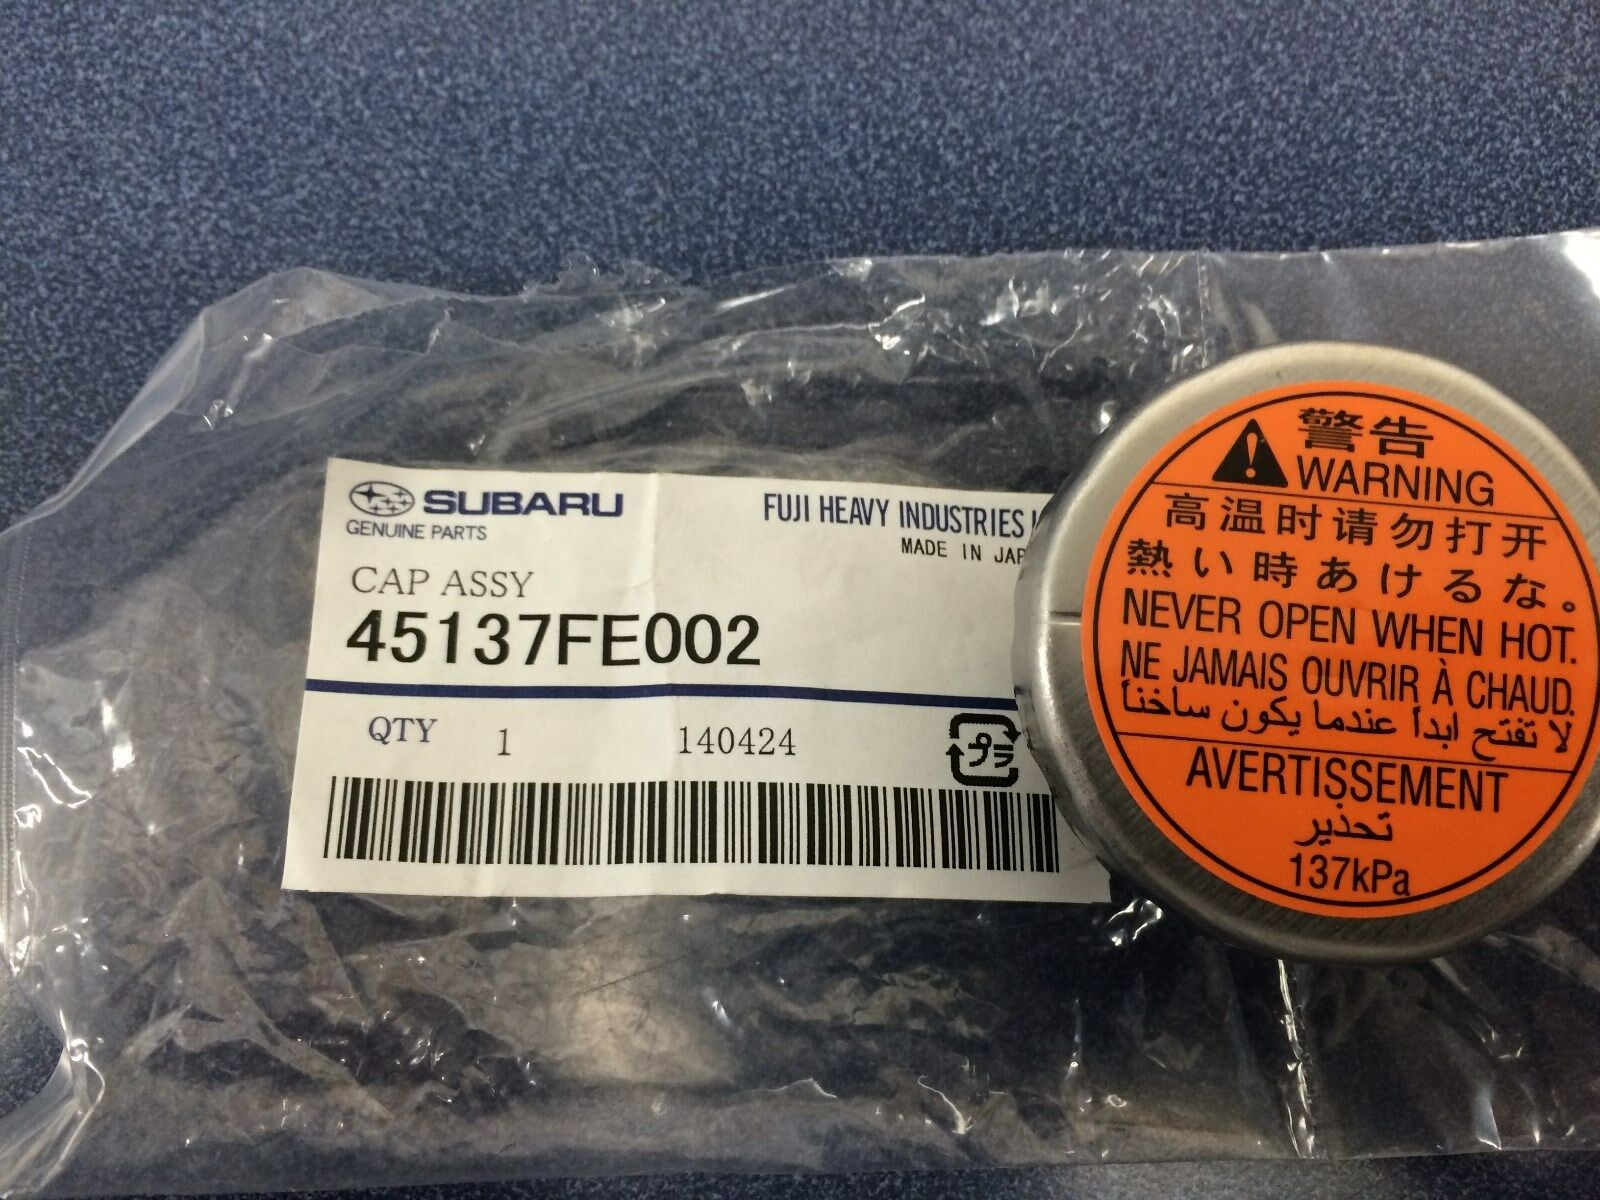 New Genuine Oem Subaru Radiator Cap Outback Xt Legacy Gt Turbo Wrx 2000 Pcv Valve Location 1 Of 1only 5 Available